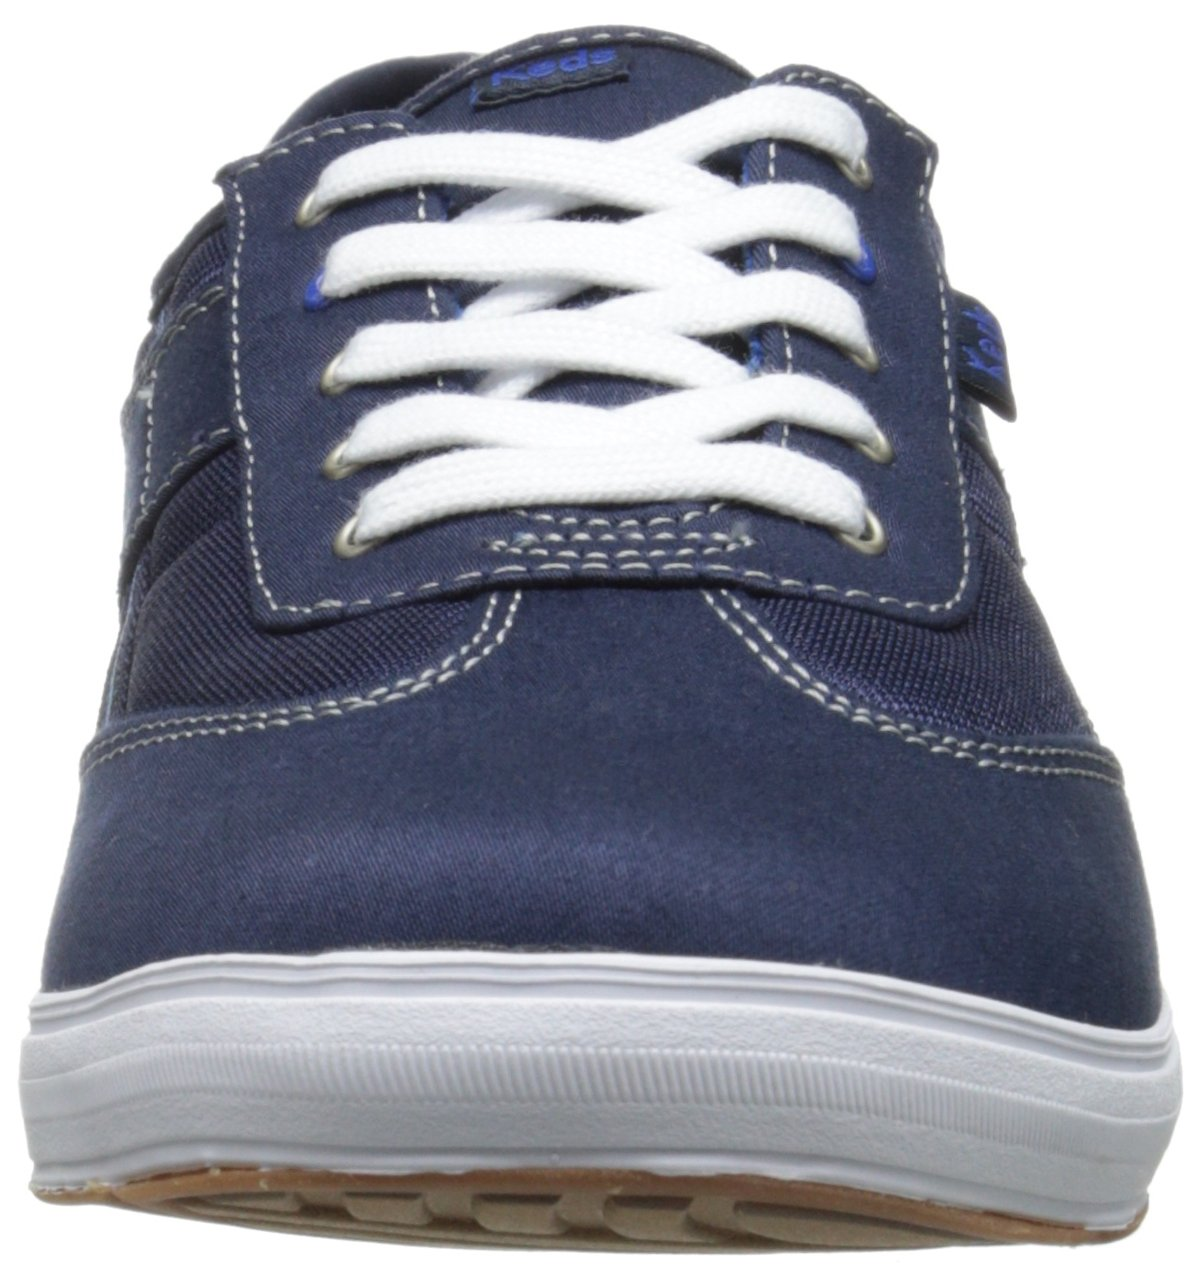 Keds Women's Craze T-Toe Twill Sneaker, Peacoat Navy, 10 M US by Keds (Image #4)